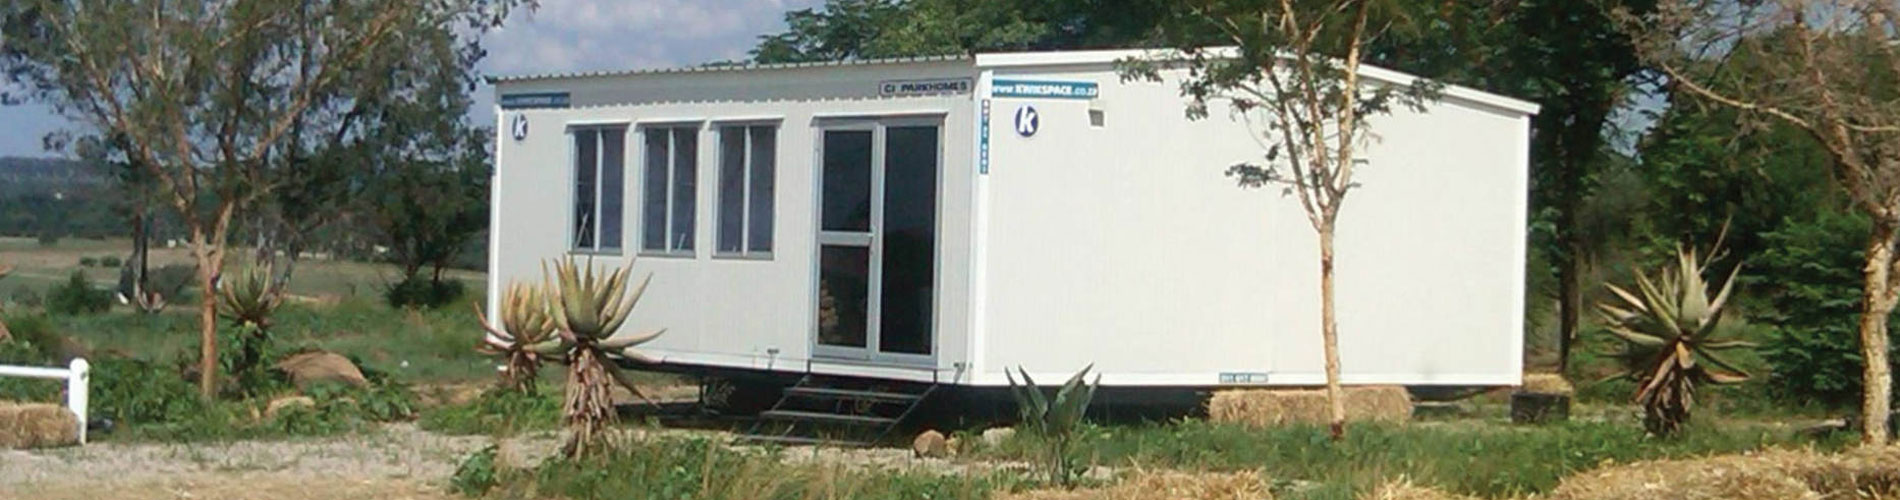 From our South African manufacturing facility, we manufacture cost effective mobile classrooms. We also help with mobile library solutions